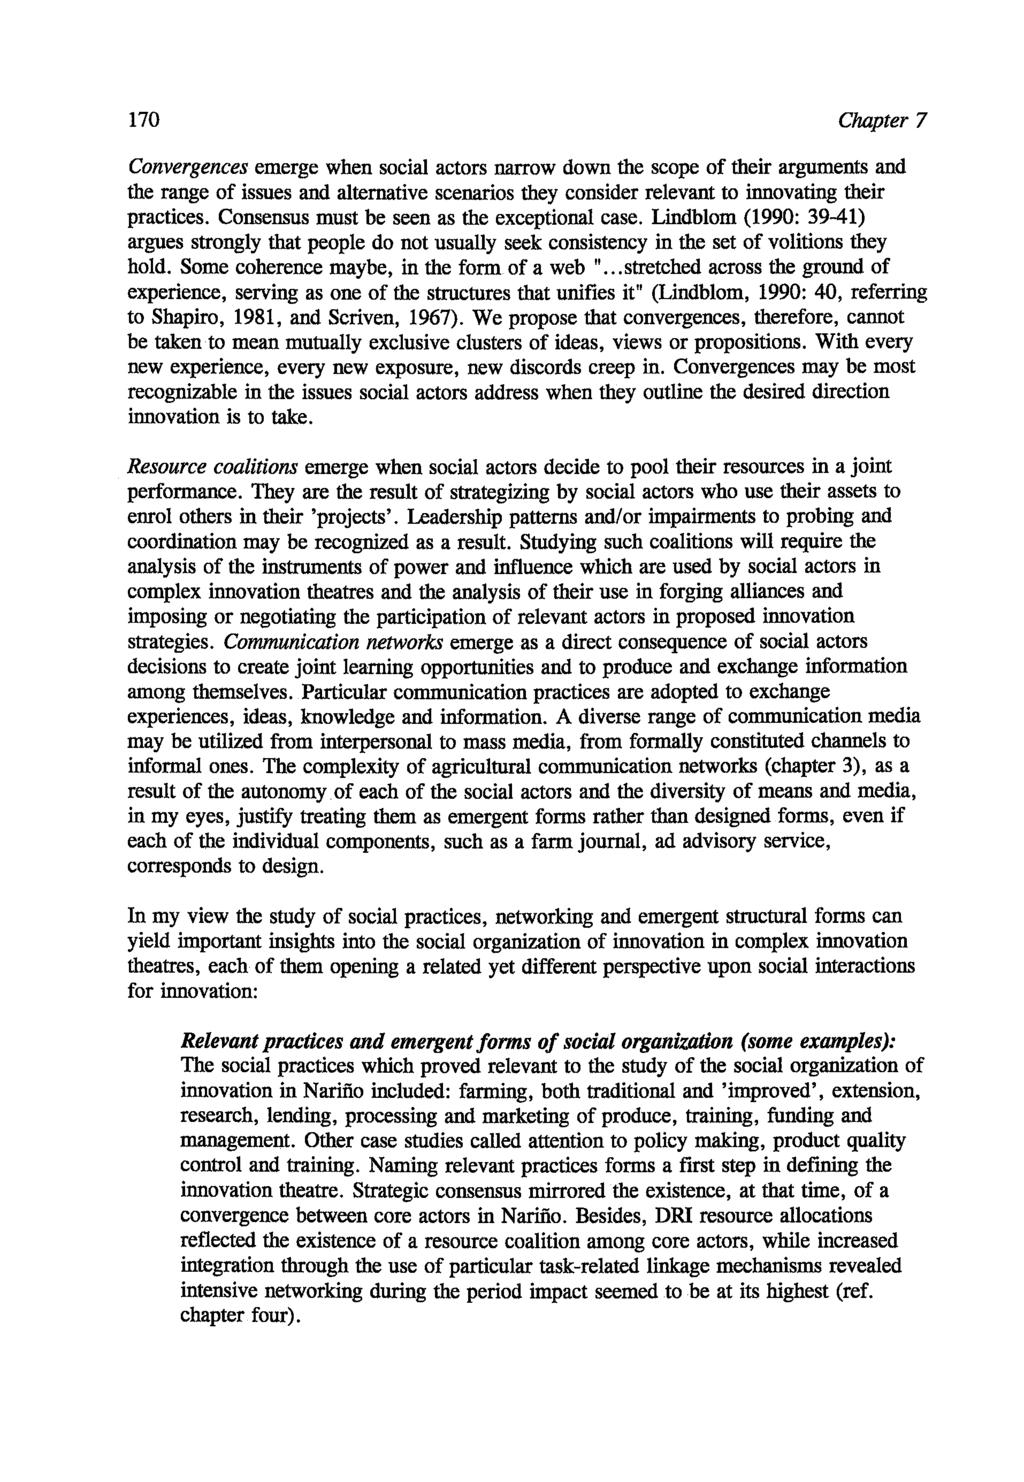 ab34064a4b3 Facilitating Innovation. An Action-Oriented Approach and Participatory  Methodology to Improve Innovative Social Practice In Agriculture. - PDF